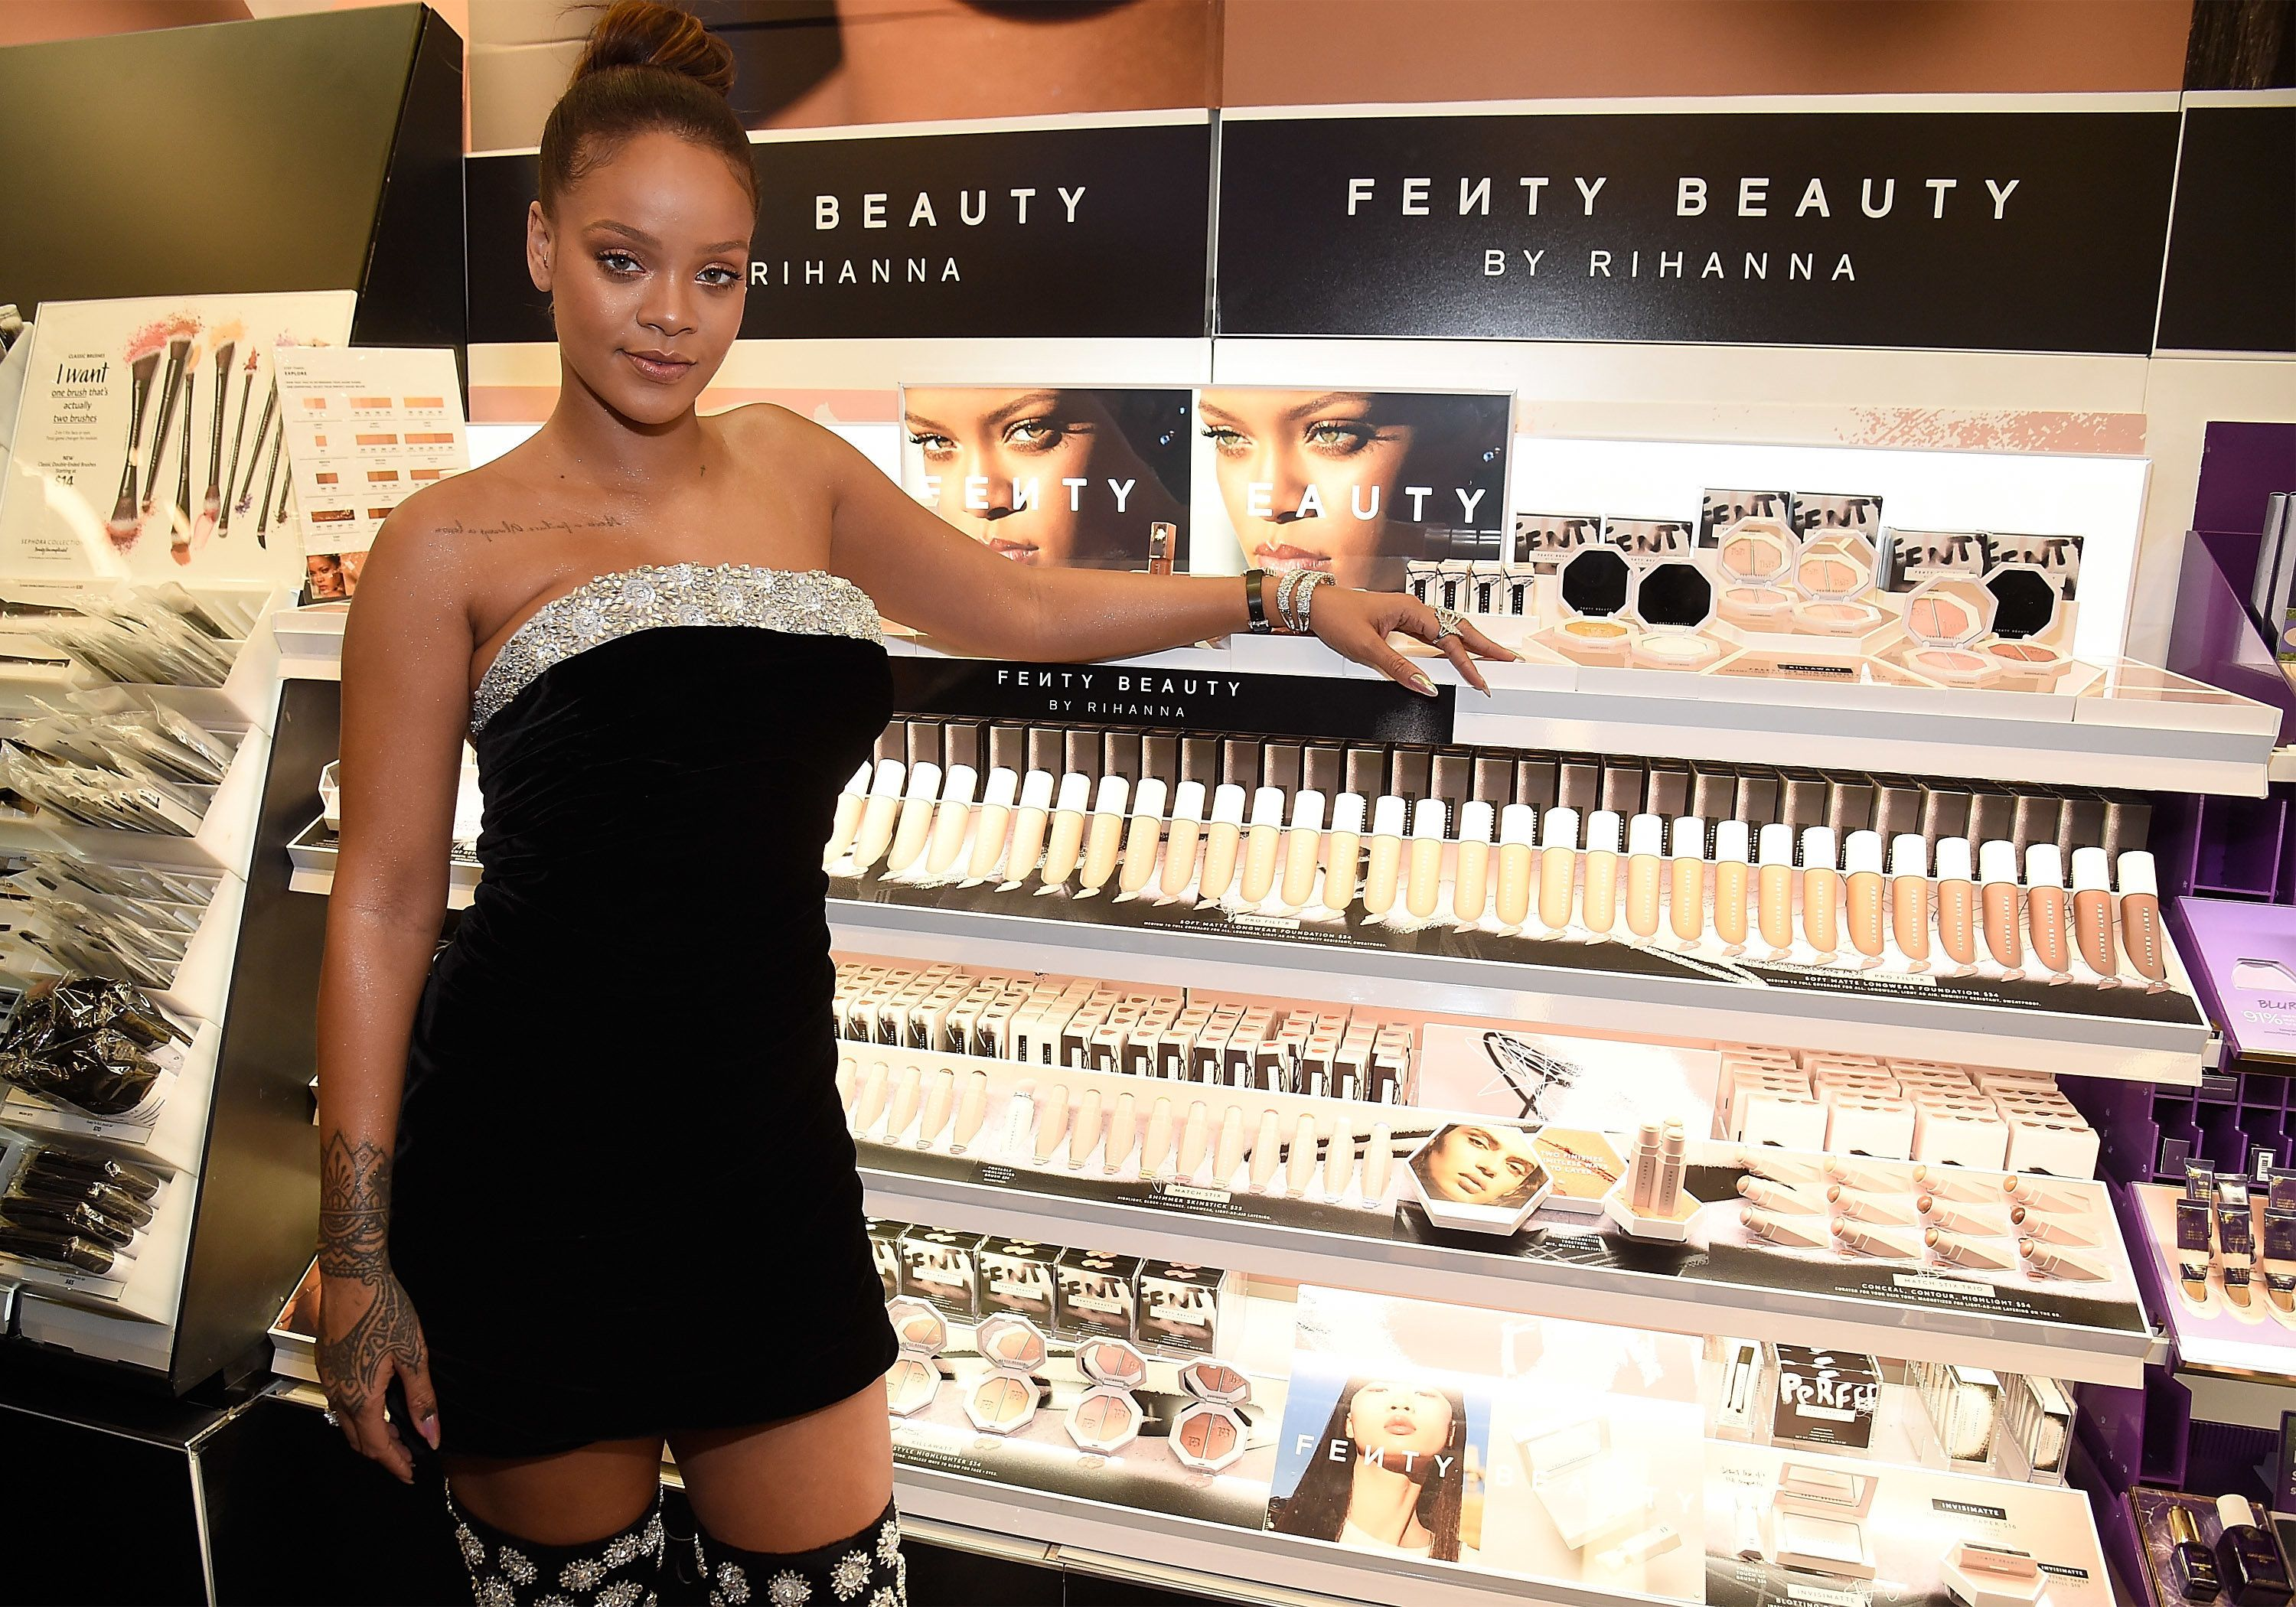 NEW YORK, NY - SEPTEMBER 07: Rihanna launches Fenty Beauty at Sephora Times Square on September 7, 2017 in New York, New York. (Photo by Kevin Mazur/Getty Images for Fenty Beauty)